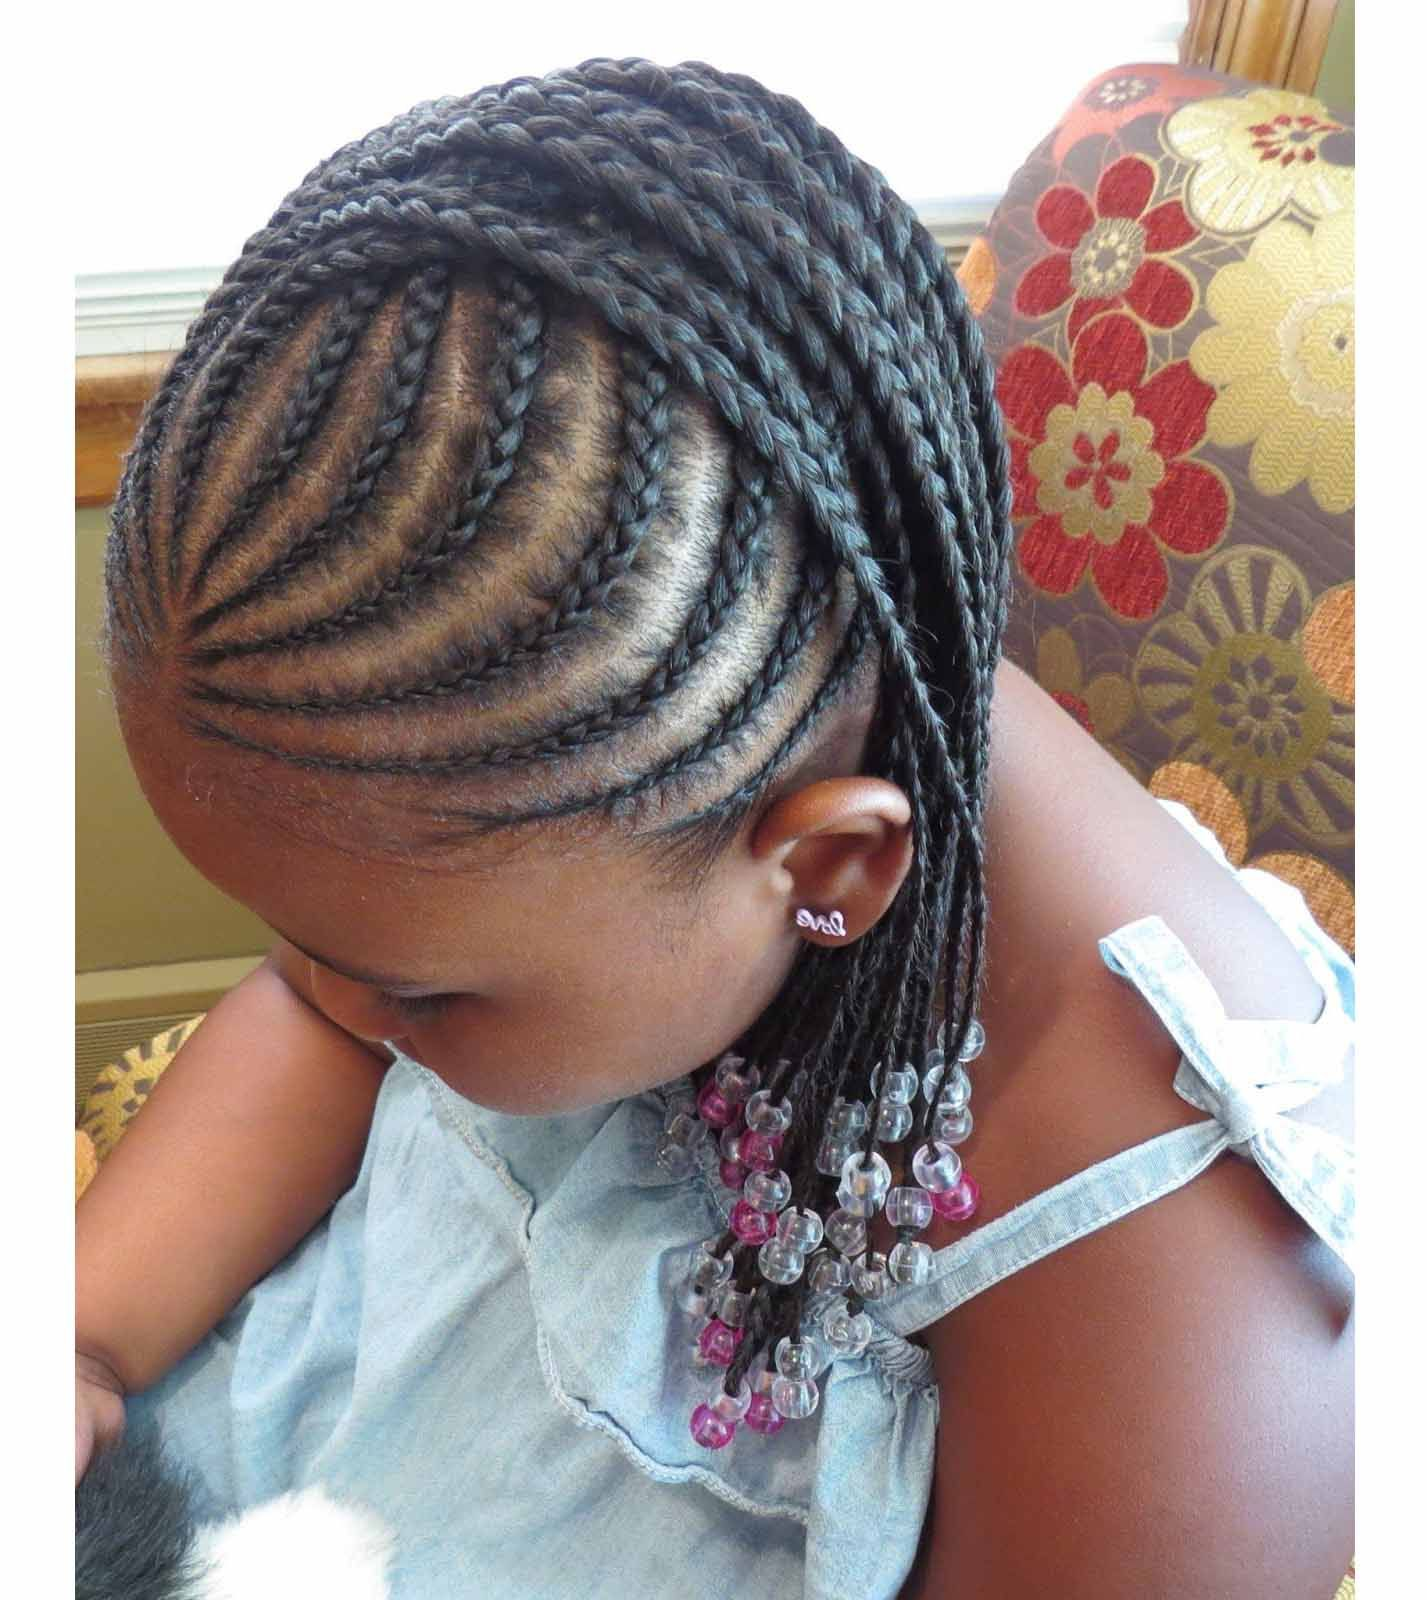 Astonishing 1000 Images About Hair Dos On Pinterest Protective Hairstyles Hairstyles For Women Draintrainus